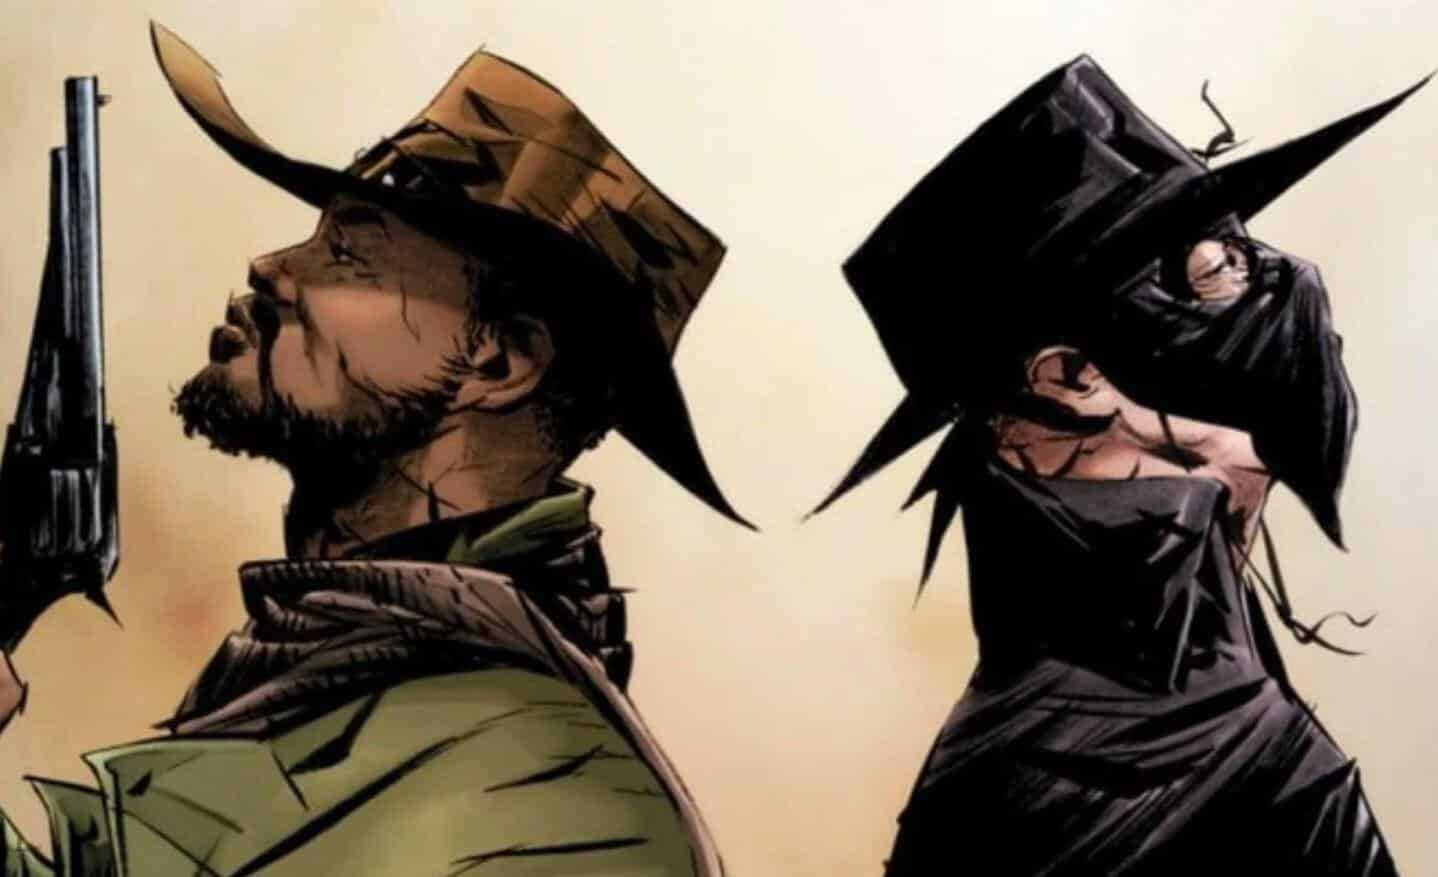 Djangozorro Crossover Movie Coming From Quentin Tarantino